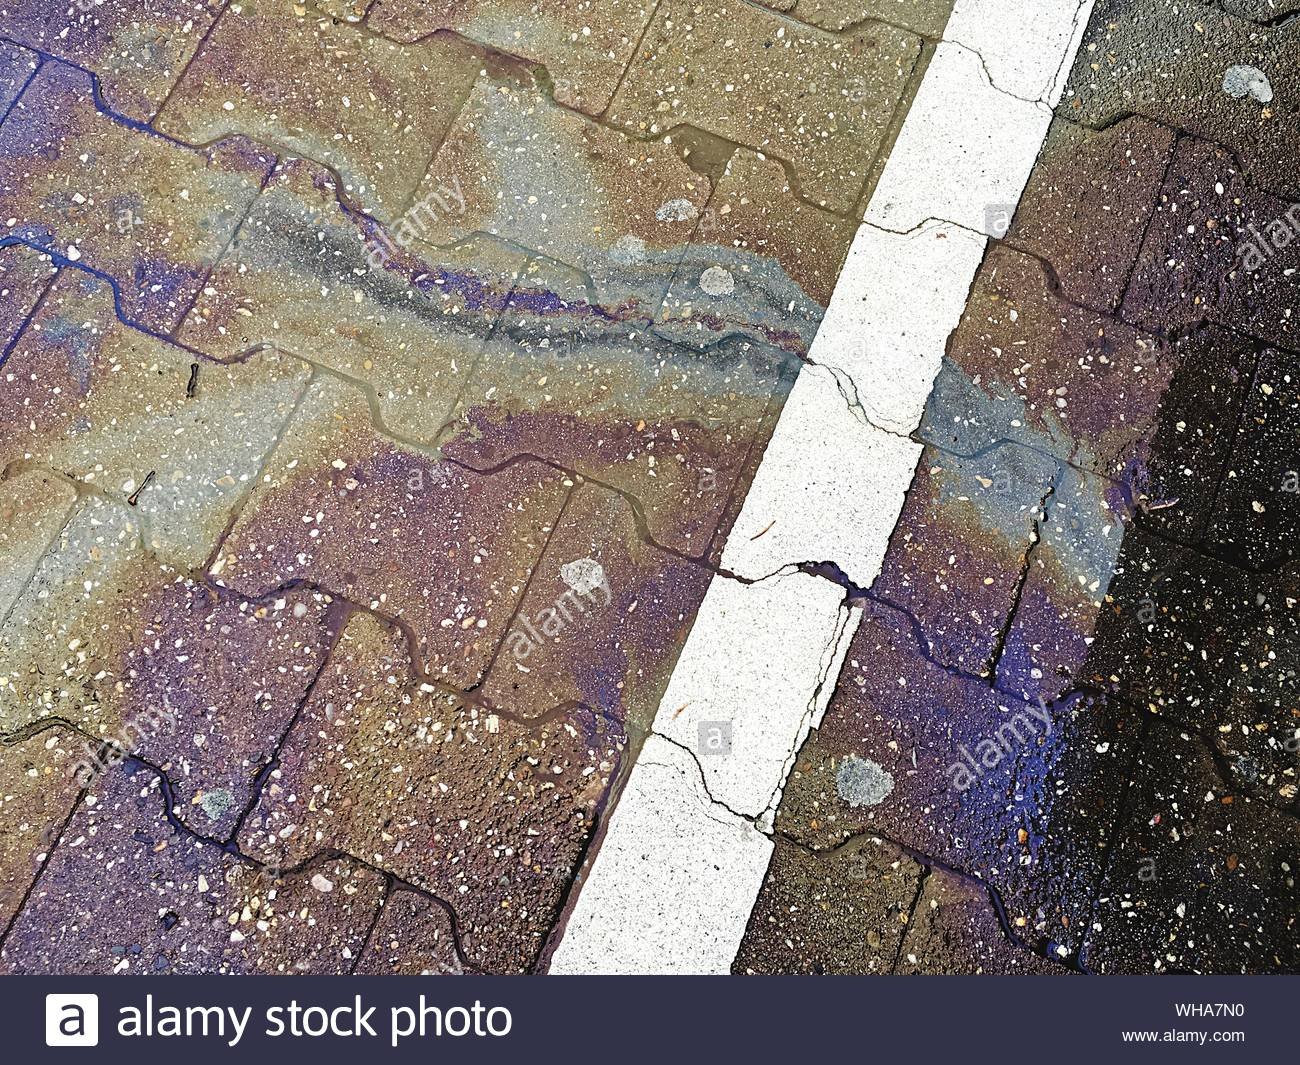 High Angle View Of Oil Spills On Street Stock Photo